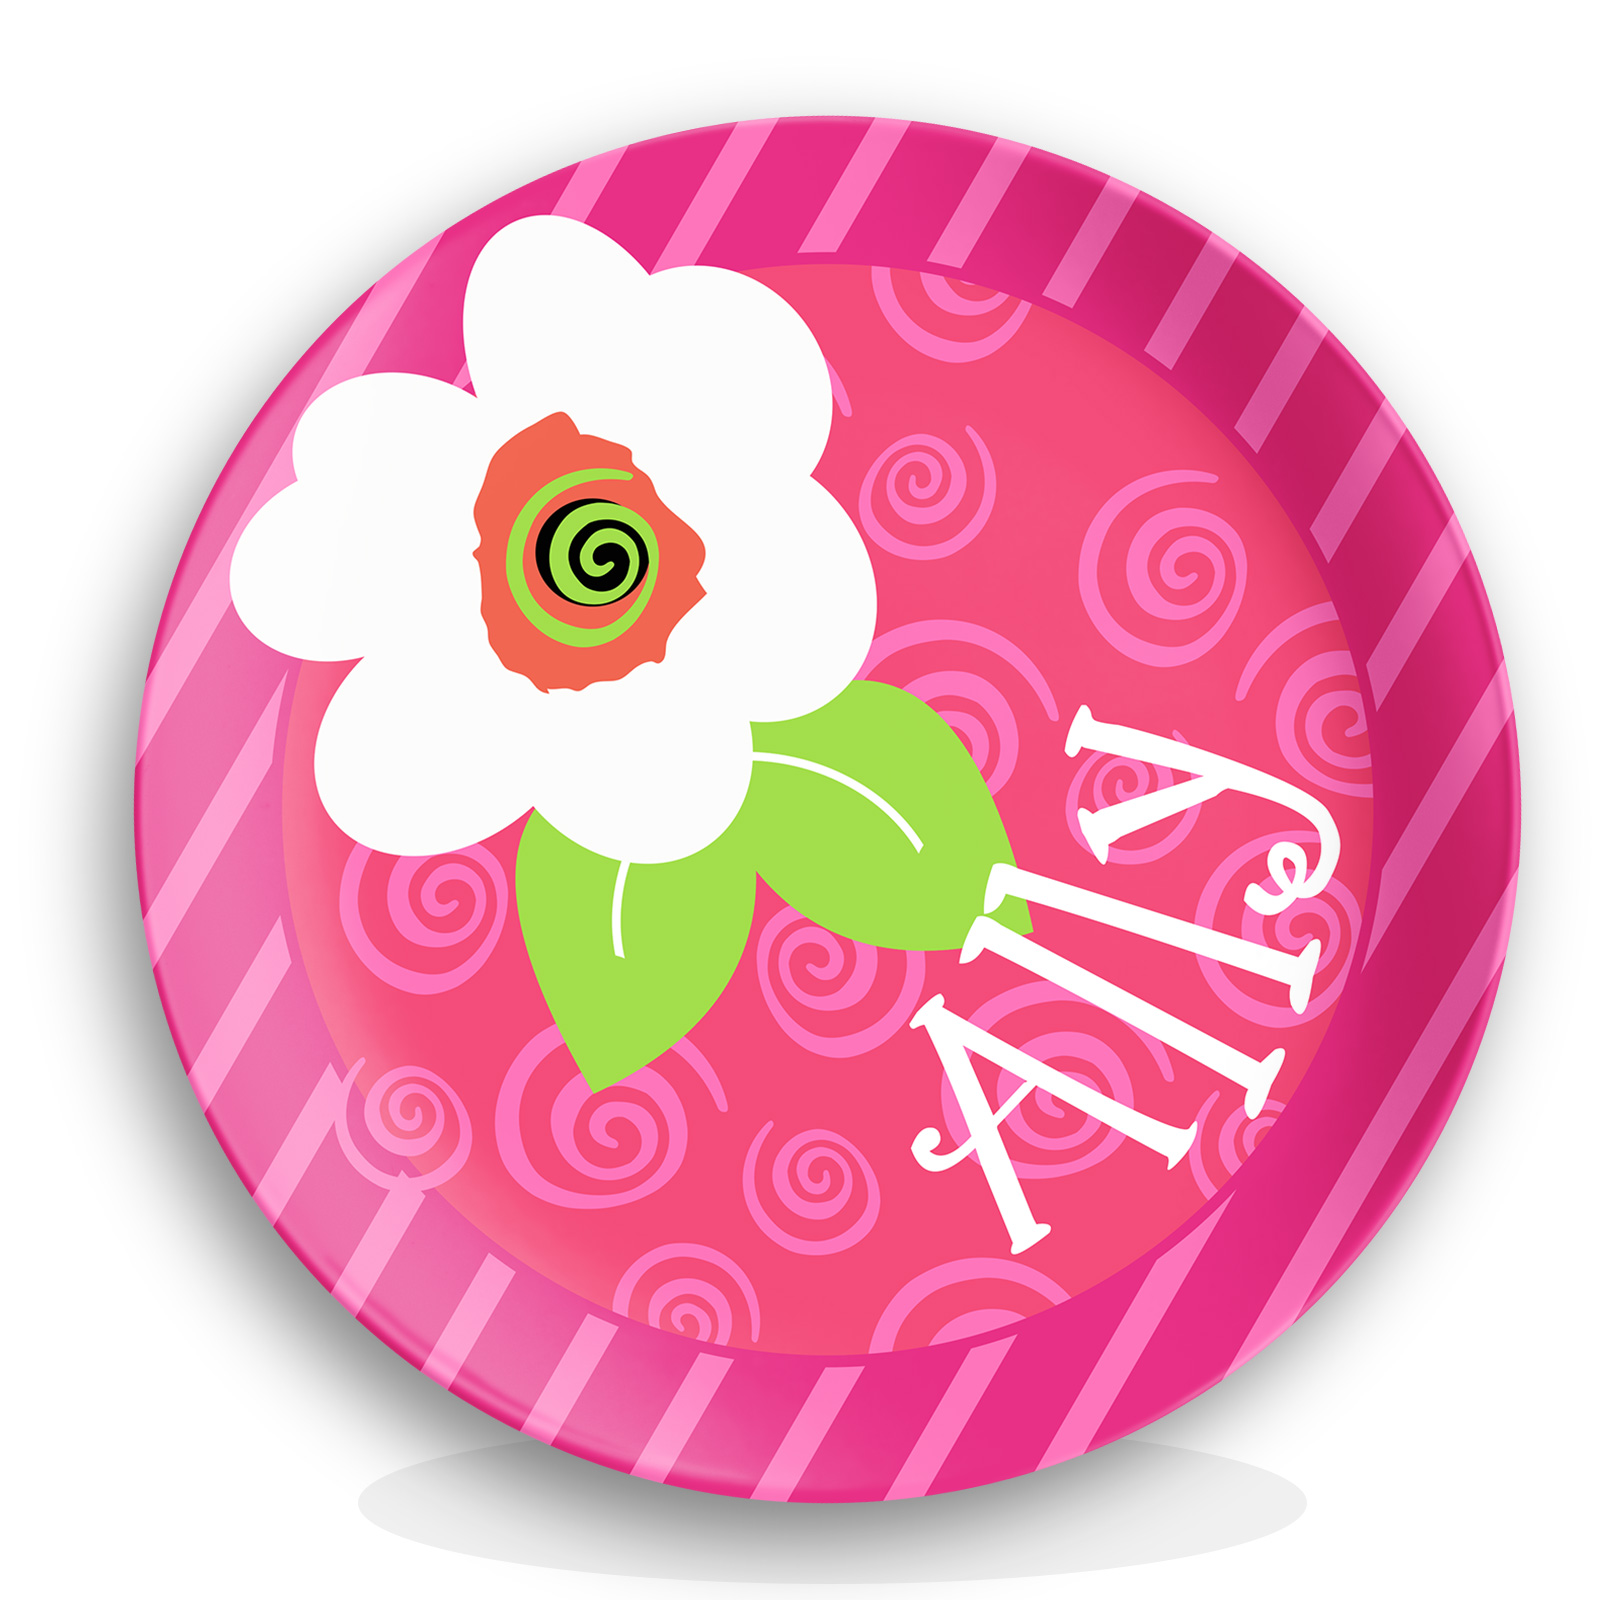 Personalized Kids Melamine Plate - Flower Swirls ...  sc 1 st  Lime Rikee Designs & Flower Swirls Girls Melamine Personalized Plate | Big Flowers ...